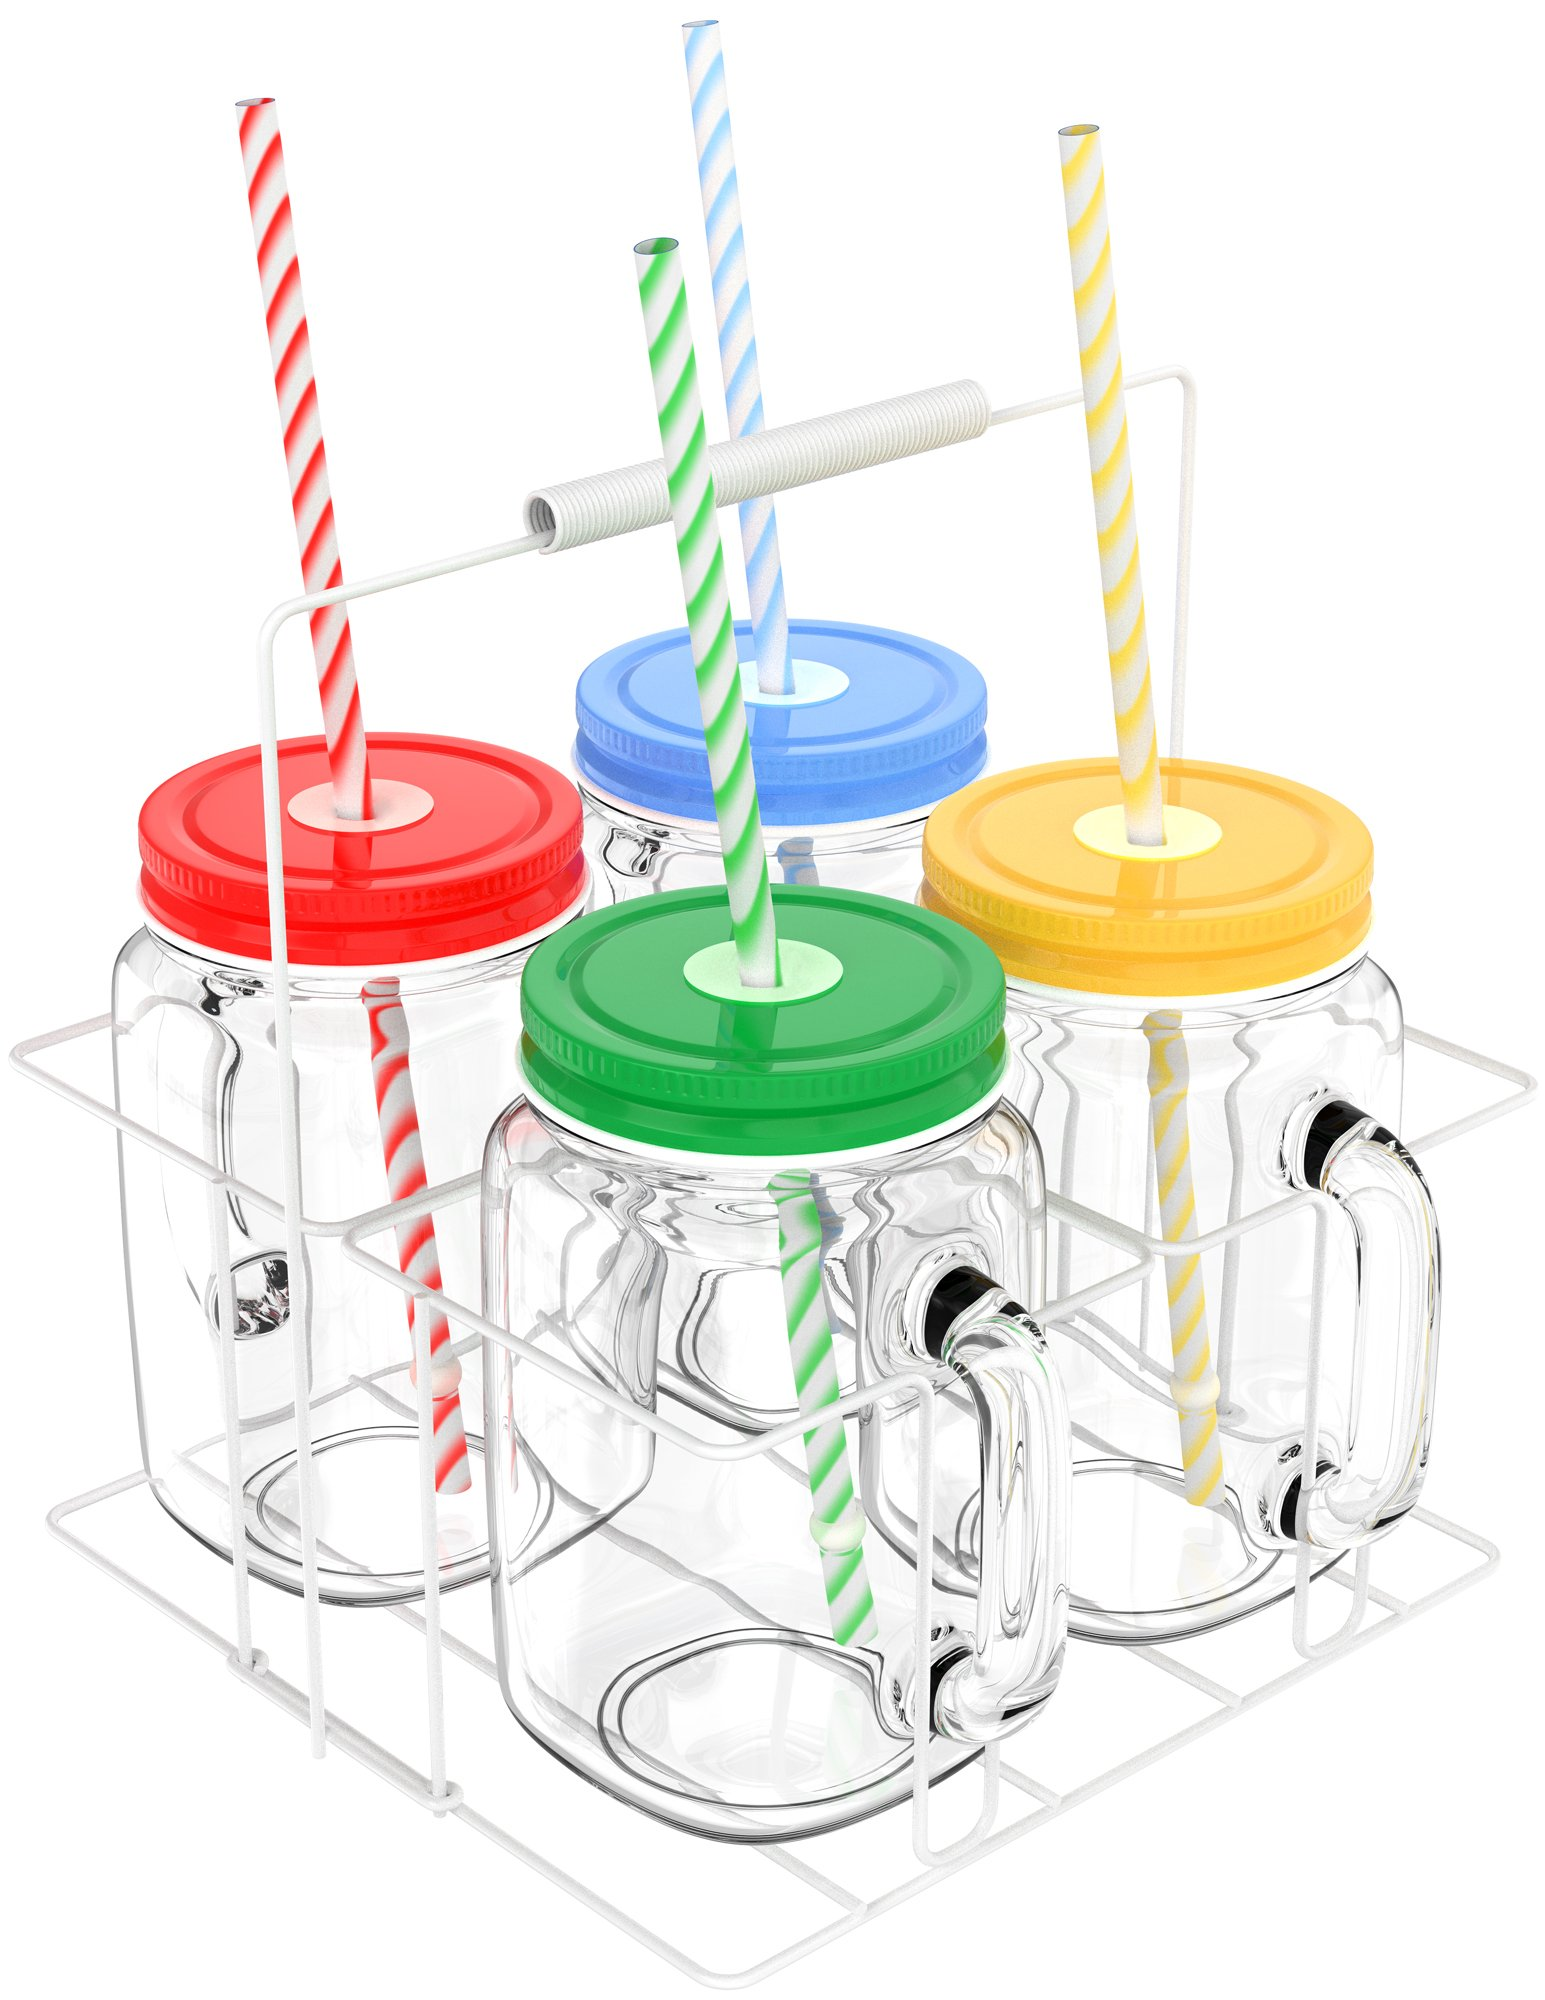 Vremi 16 oz Mason Jars with Handles Lids and Straws - 4 Piece Wide Mouth Mason Jar Mugs Set with Colored Metal Lids and Holder - Decorative Clear Glass Tumblers Set with Mason Jar Accessories by Vremi